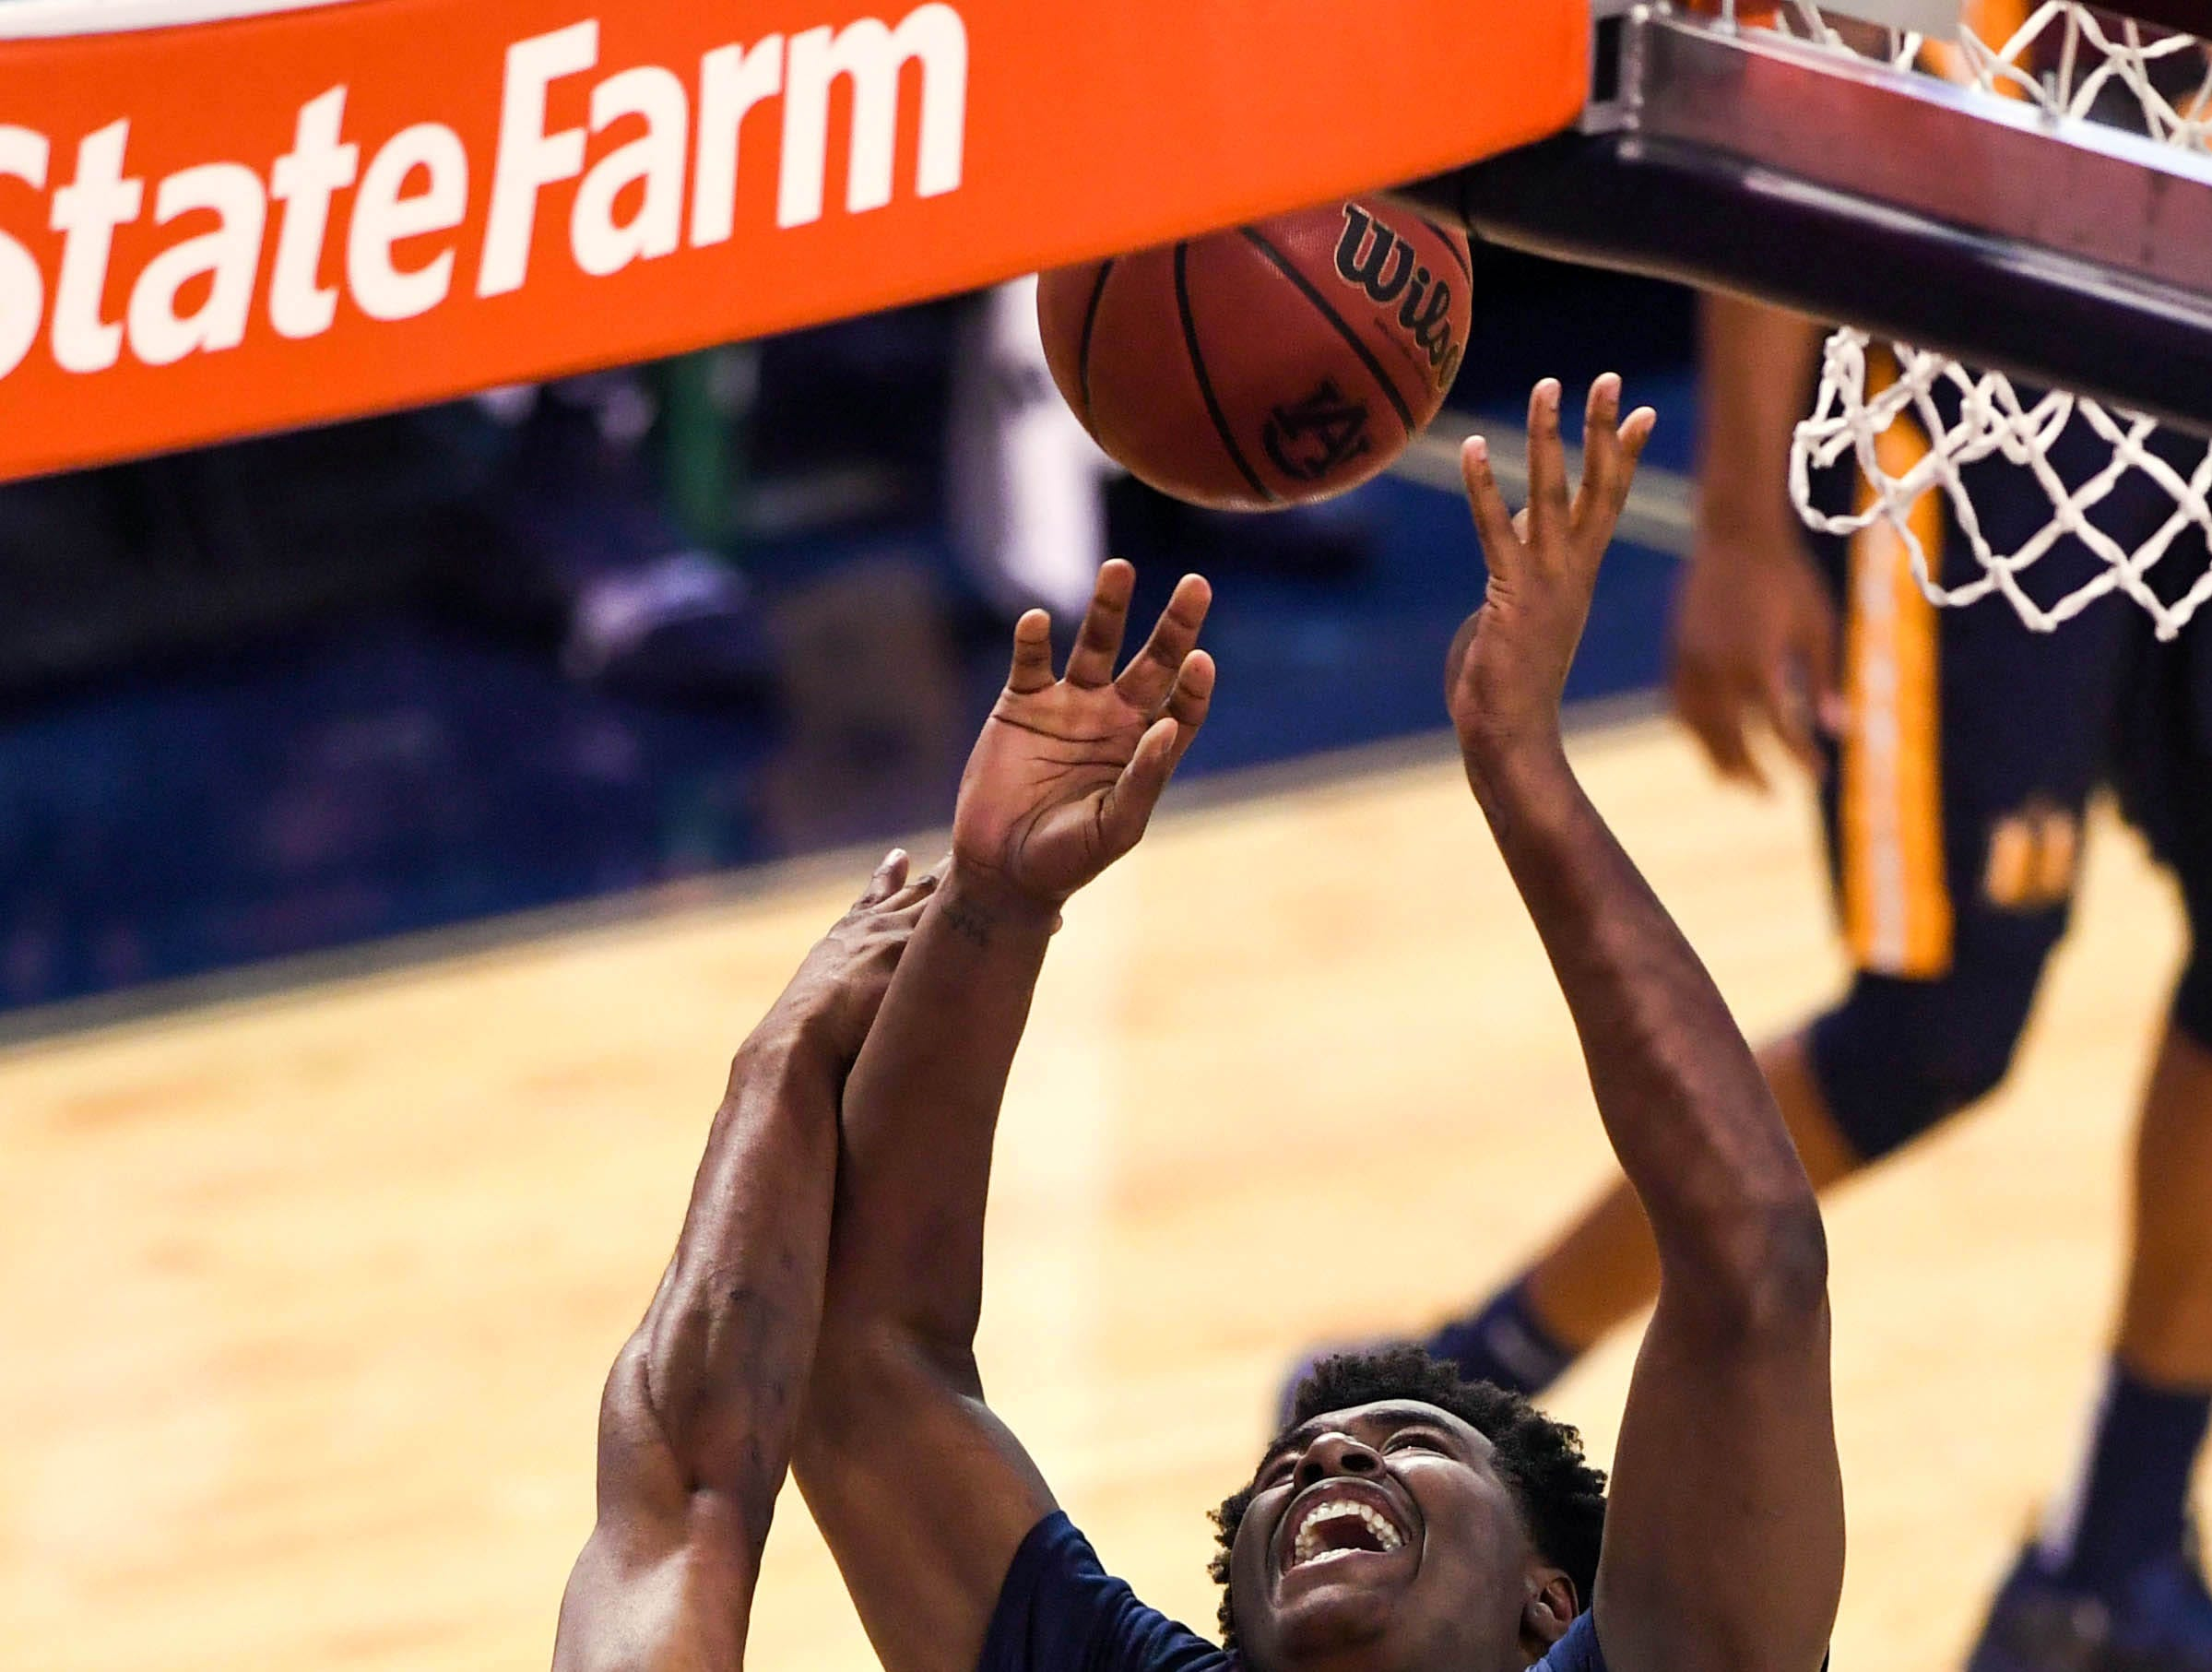 Dec 22, 2018; Auburn, AL, USA; Murray State Racers forward Darnell Cowart (32) goes up for a shot as Auburn Tigers forward Horace Spencer (0) defends during the second half at Auburn Arena. Mandatory Credit: Shanna Lockwood-USA TODAY Sports